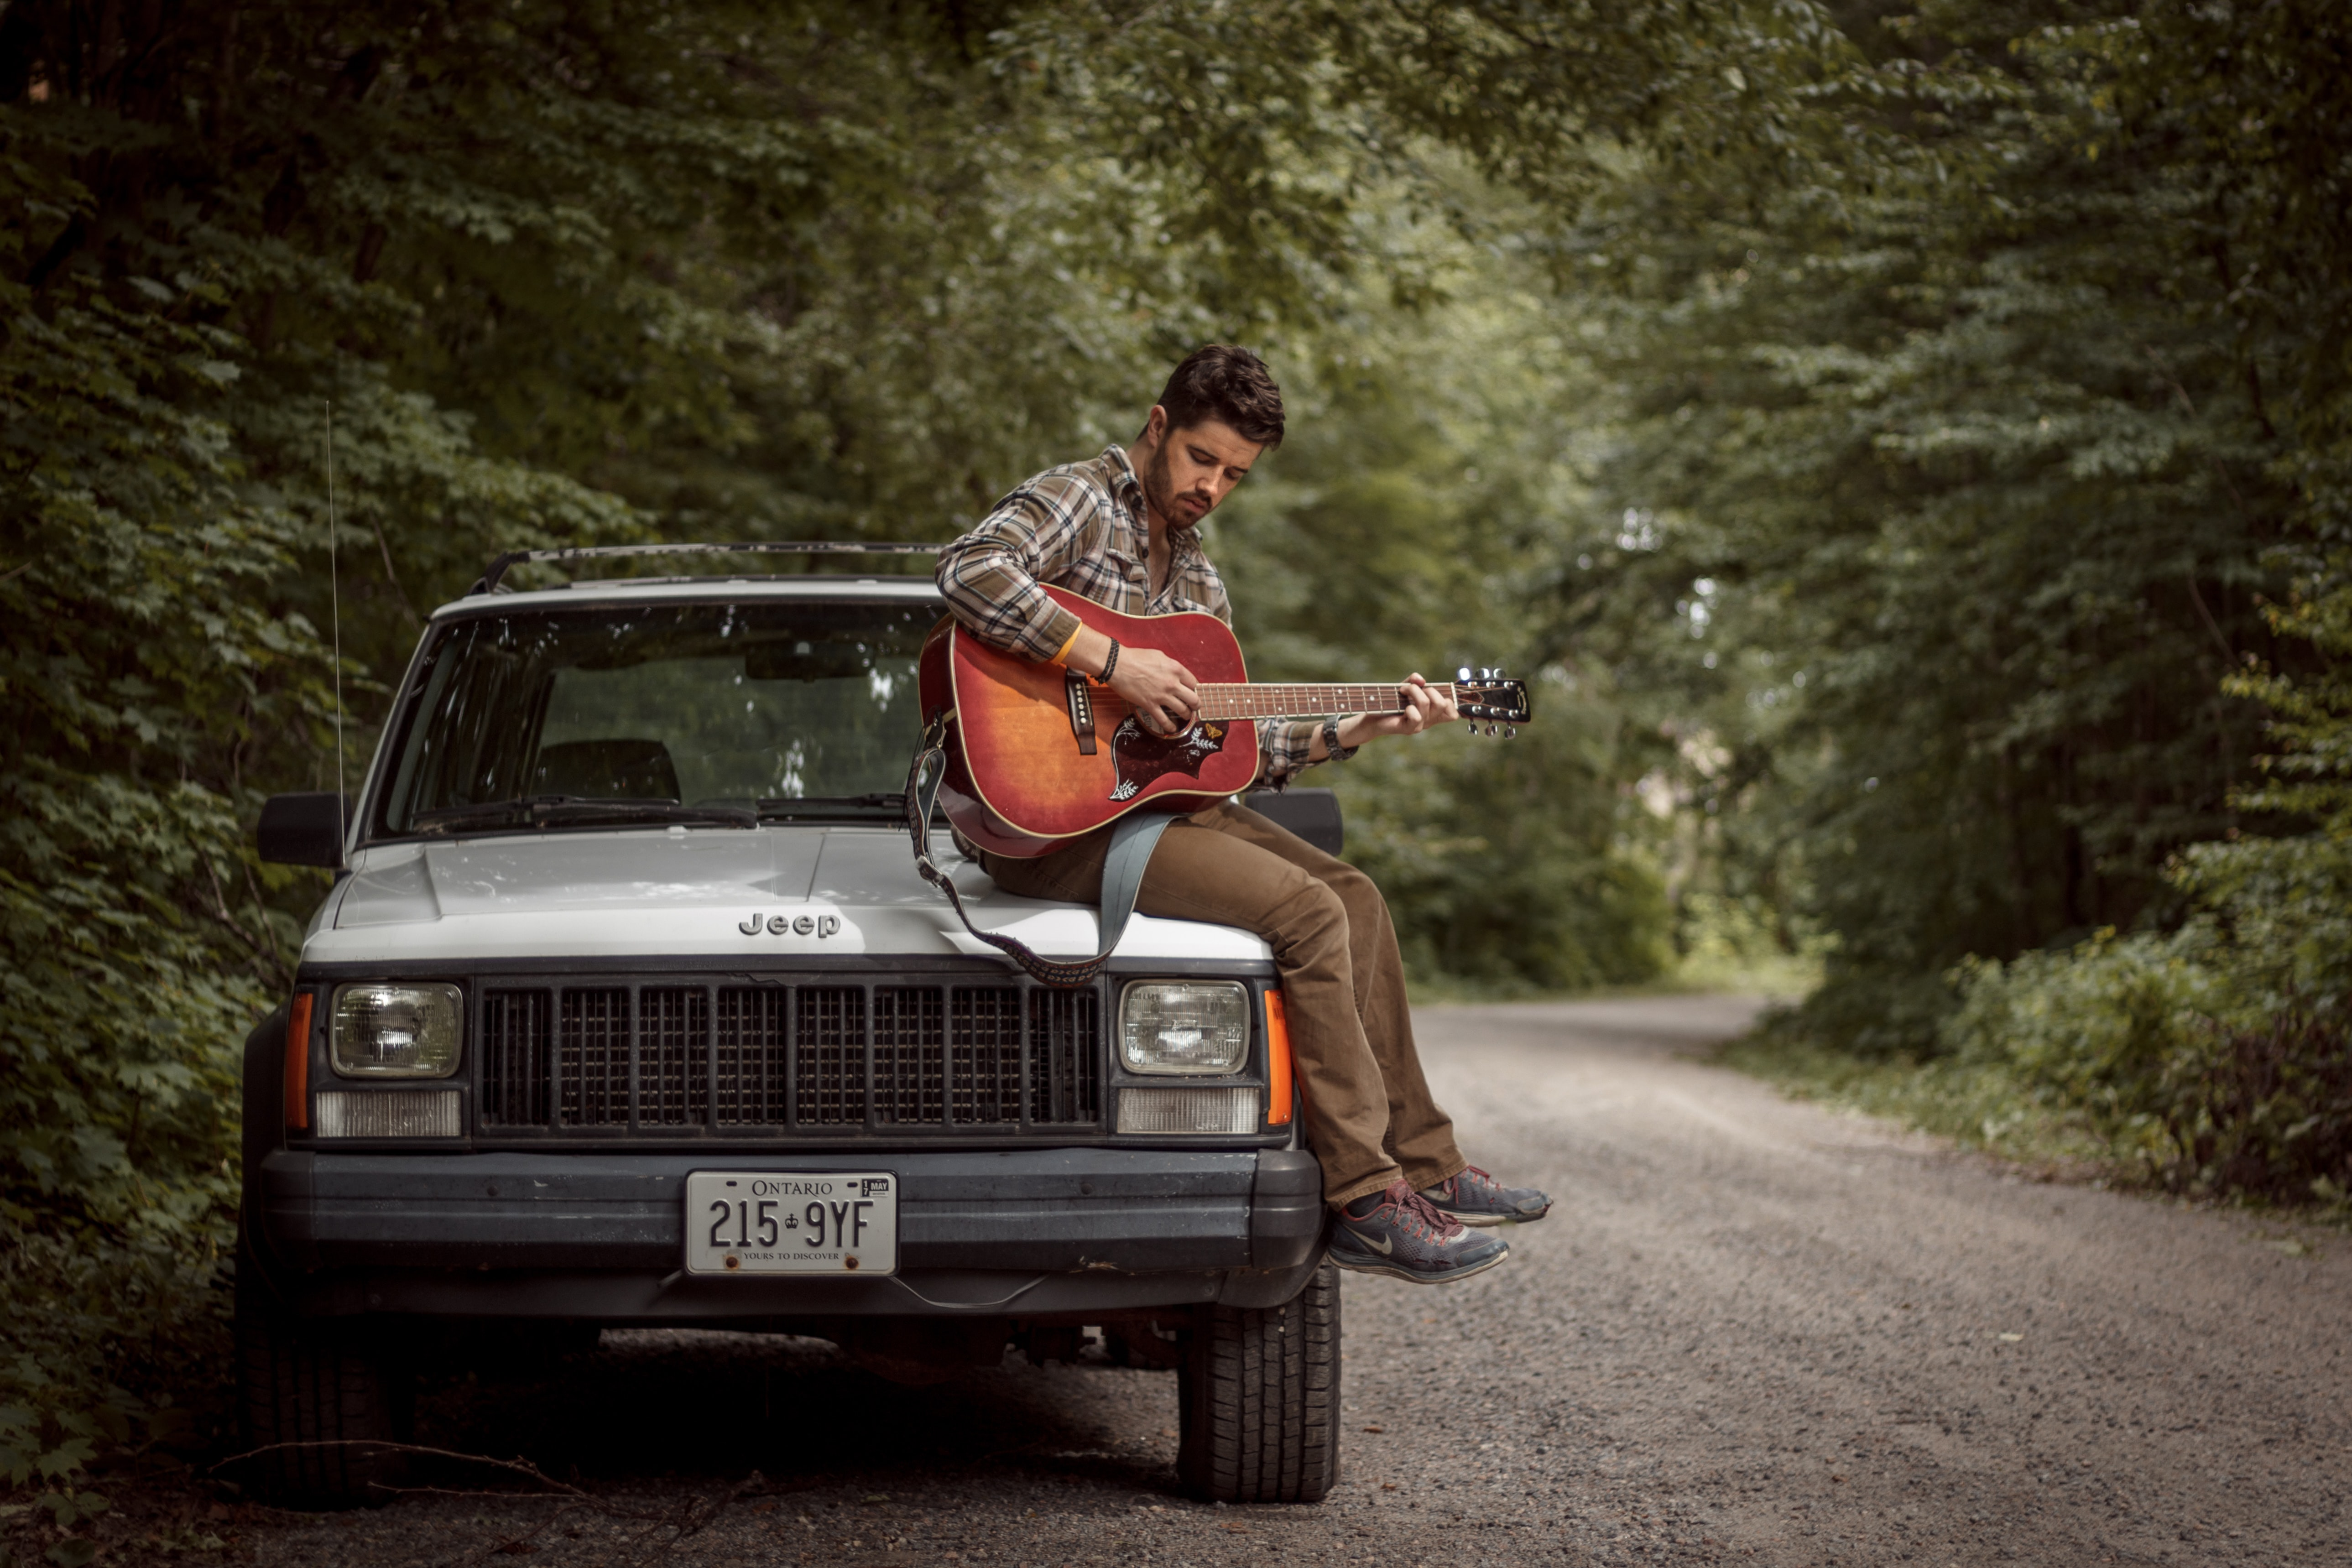 man playing guitar sitting on car